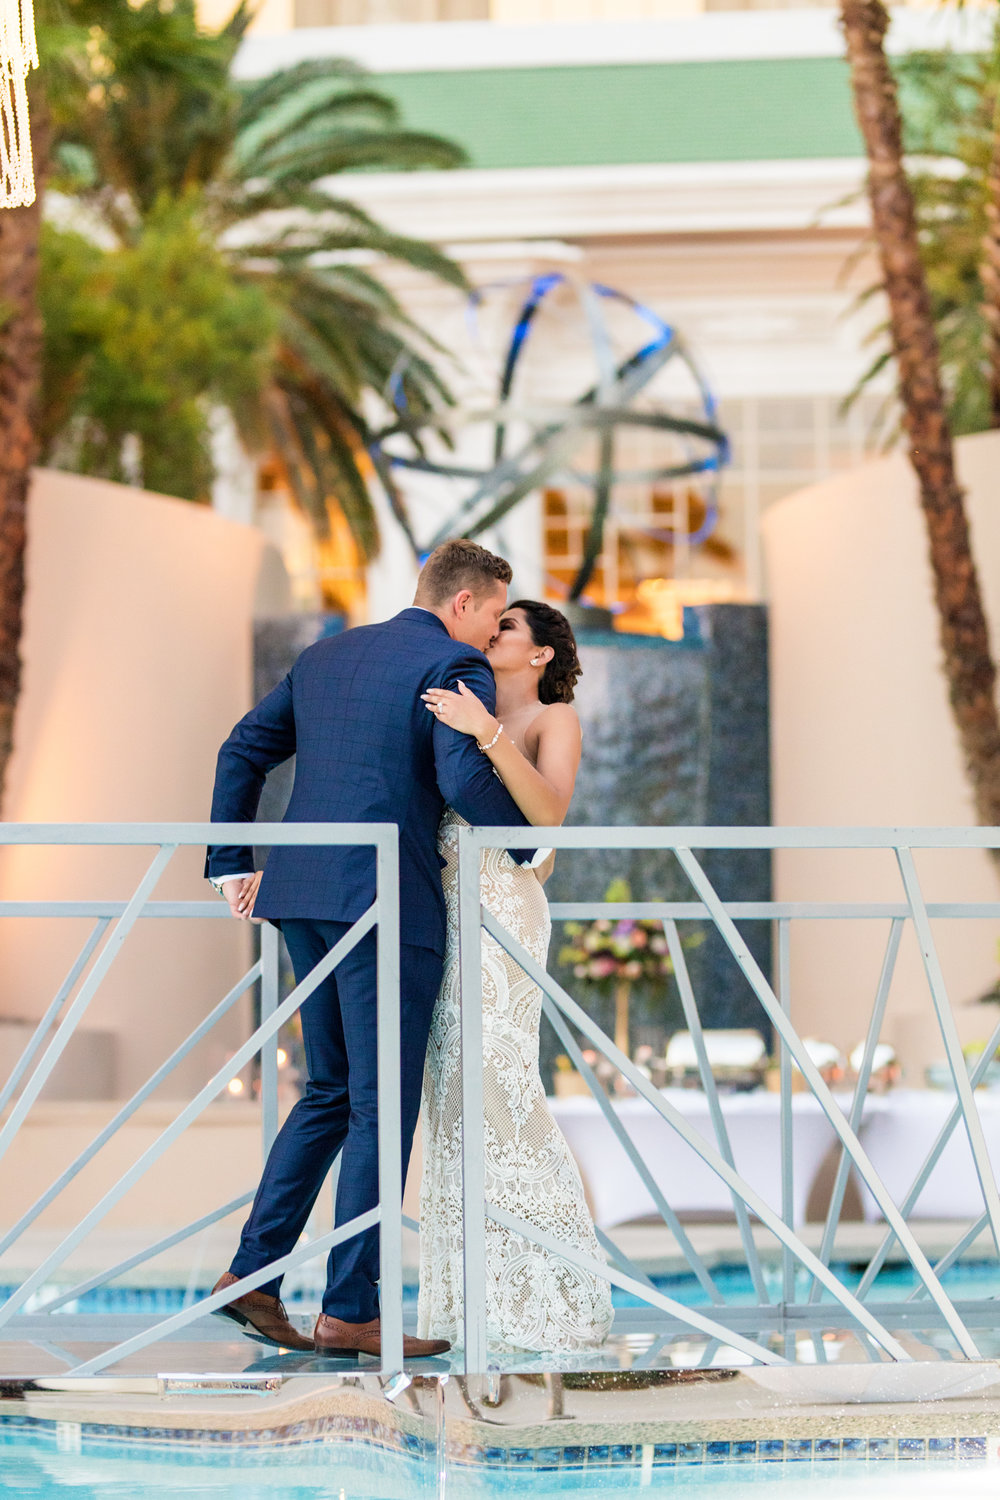 Bride and groom kiss on bridge over pool. Jewel toned wedding centerpieces with gold accents. Wedding Planning by  Andrea Eppolito Events   ·  Photography by  Shandro Photo    ·  Wedding Venue  Four Seasons Las Vegas   ·  Floral and Decor by  Destination by Design   ·  Cake by  Four Seasons Las Vegas   ·  Chandeliers and Lighting by  LED Unplugged   ·  Dress by  Berta   and Menu by Alligator Soup